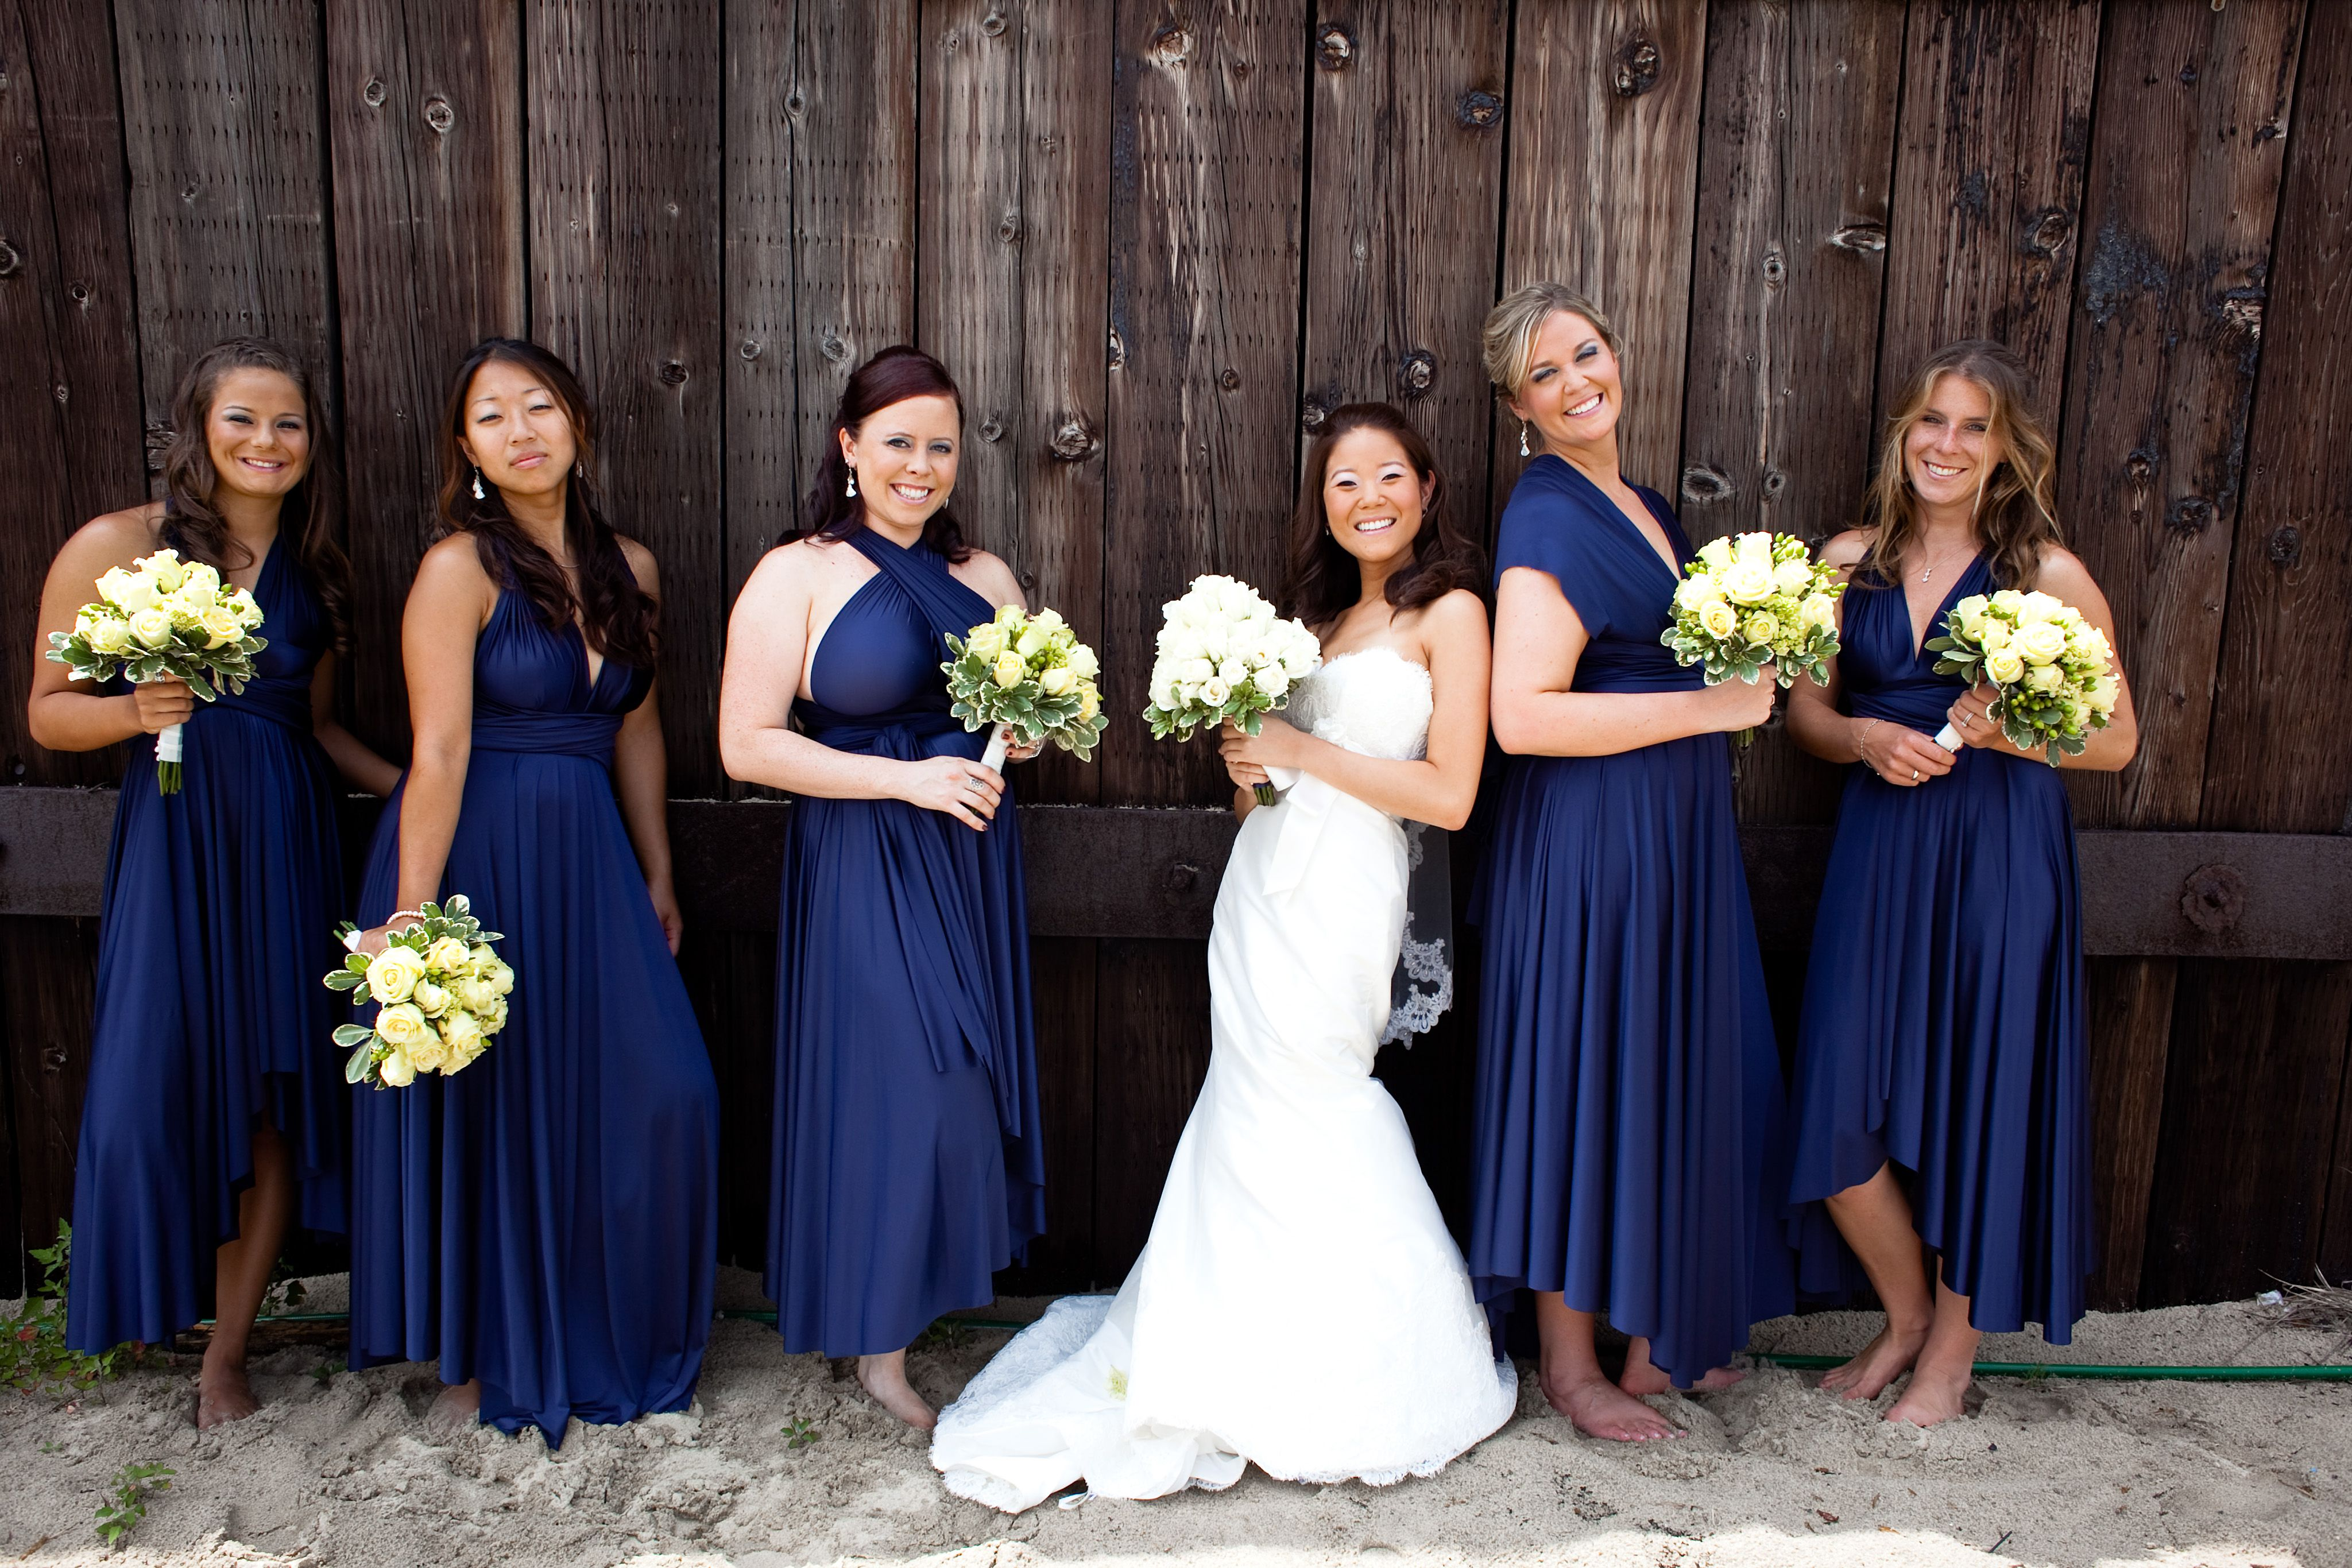 Sapphire ballgowns twobirds bridesmaid dresses a real wedding sapphire ballgowns twobirds bridesmaid dresses a real wedding featuring our multiway convertible dress ombrellifo Image collections